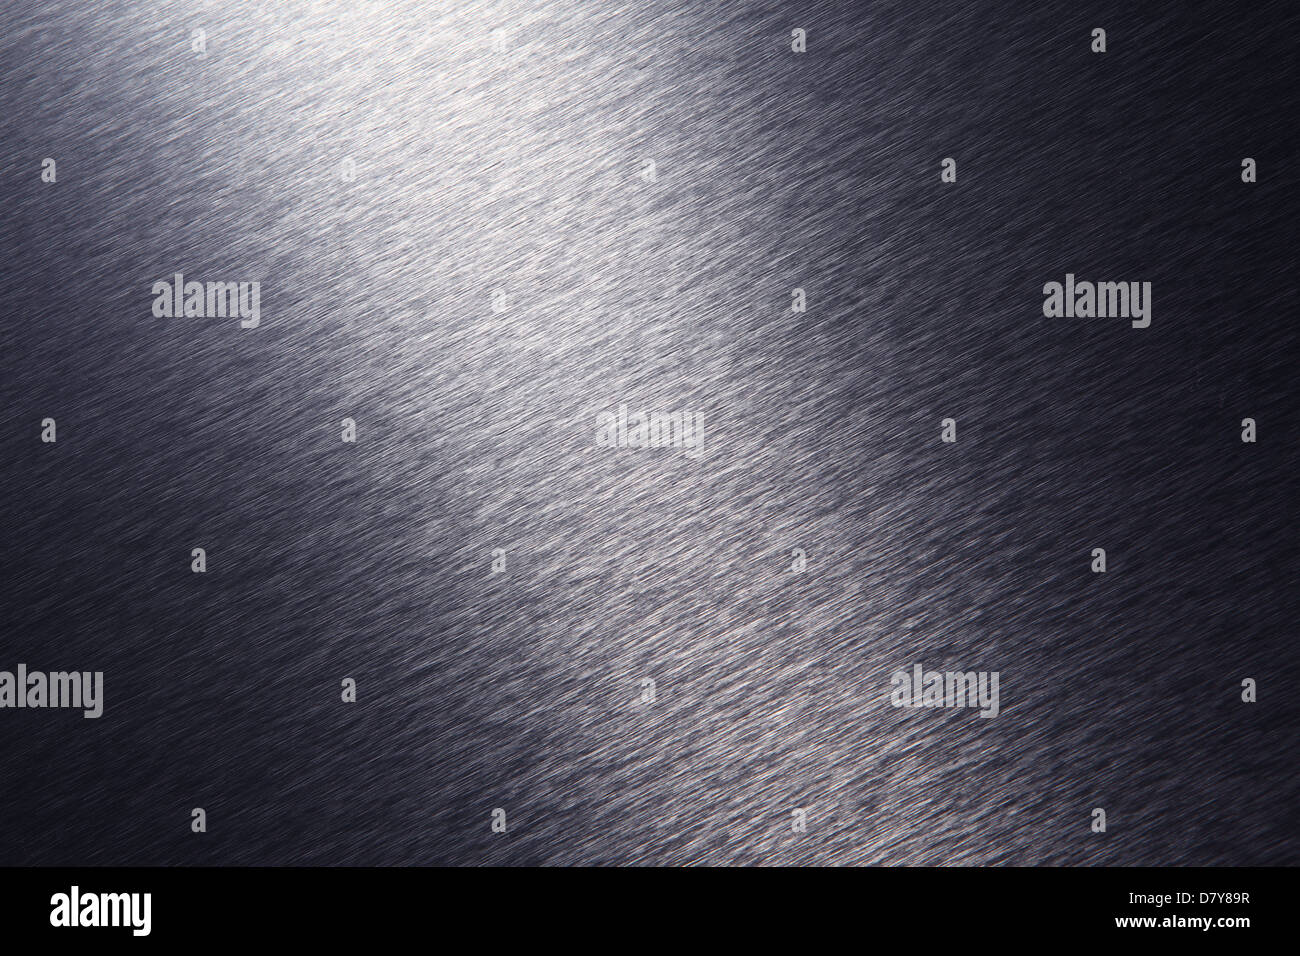 A close-up view of a brushed stainless steel surface with dramatic lighting. - Stock Image